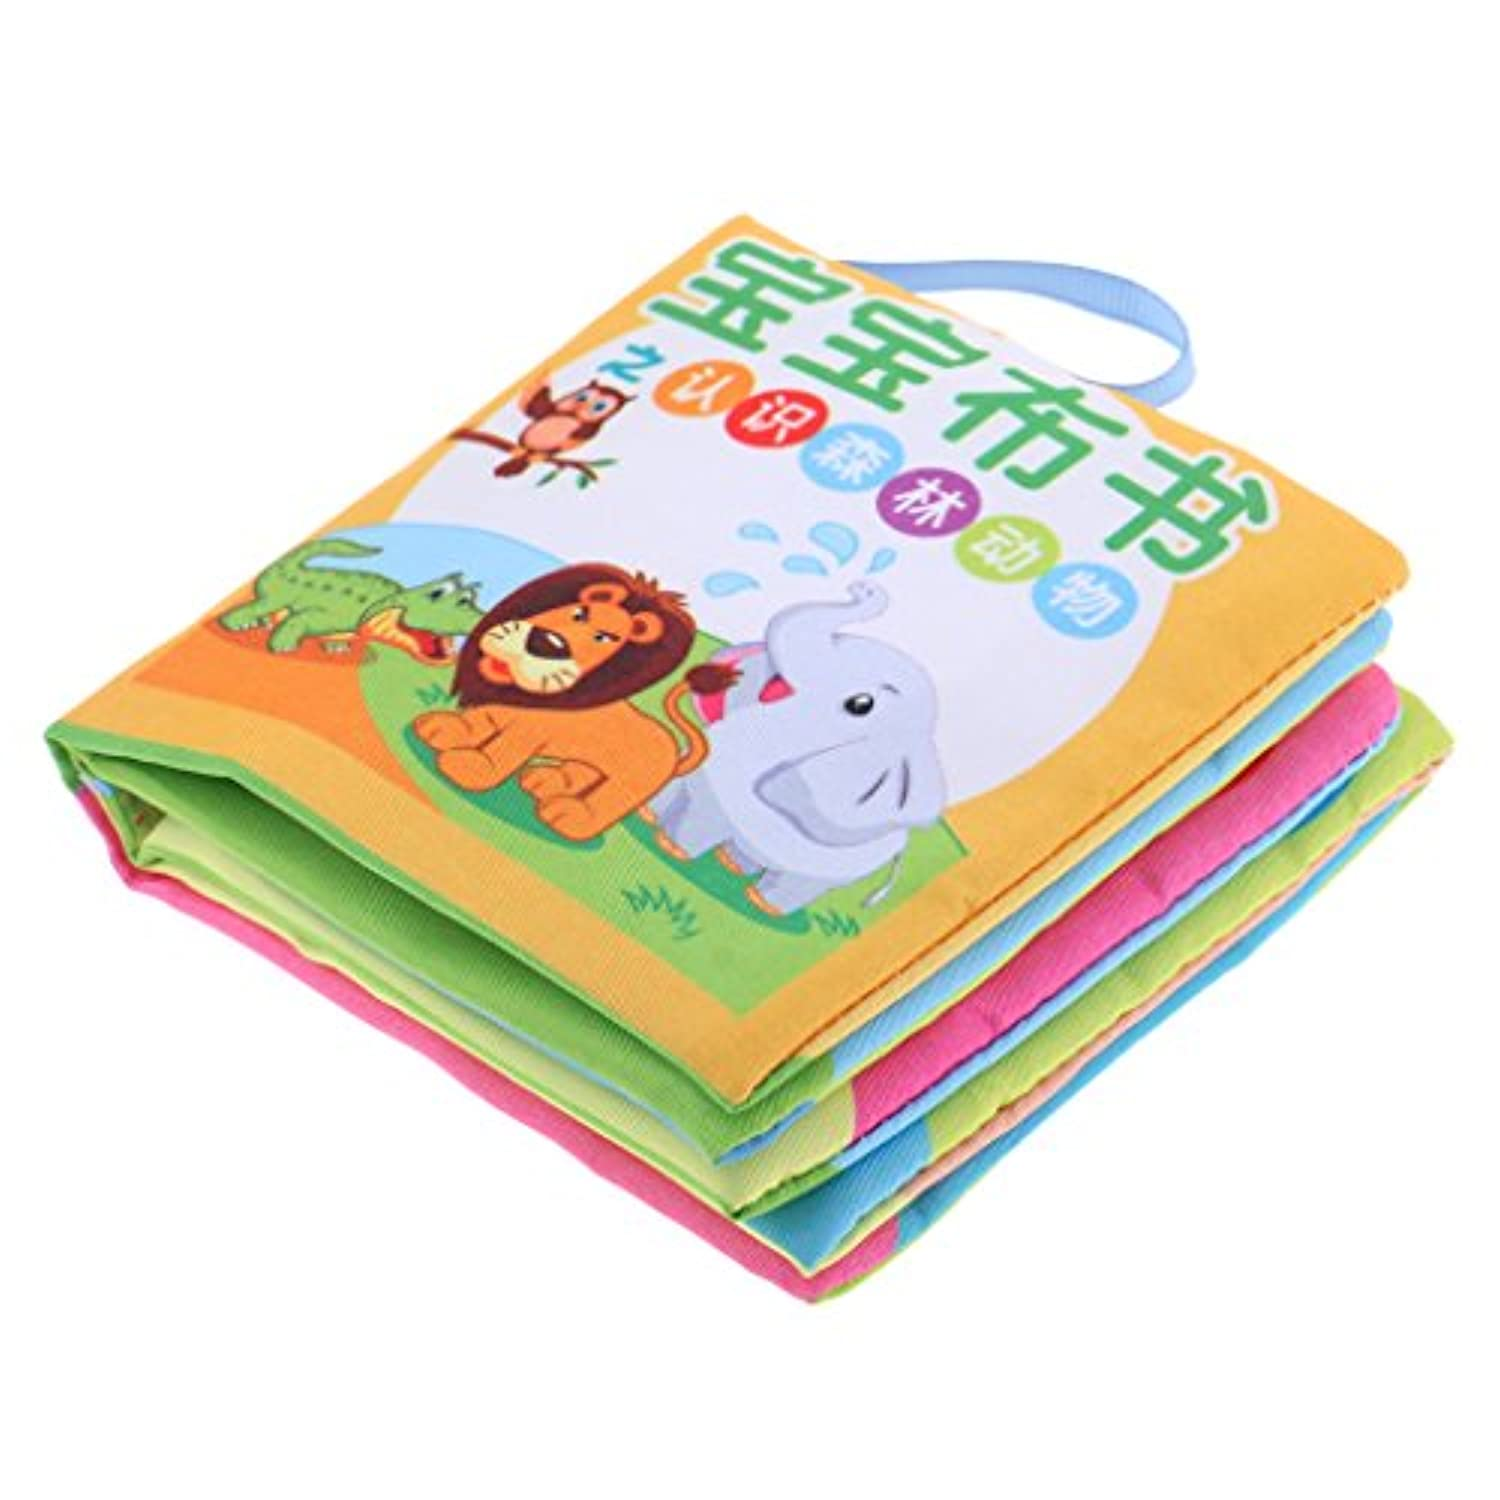 MonkeyJack 10 Pages Soft Cloth Cognize Durable Book Chinese English Colours Shapes Educational Toys for Baby Kids Development Forest Animal